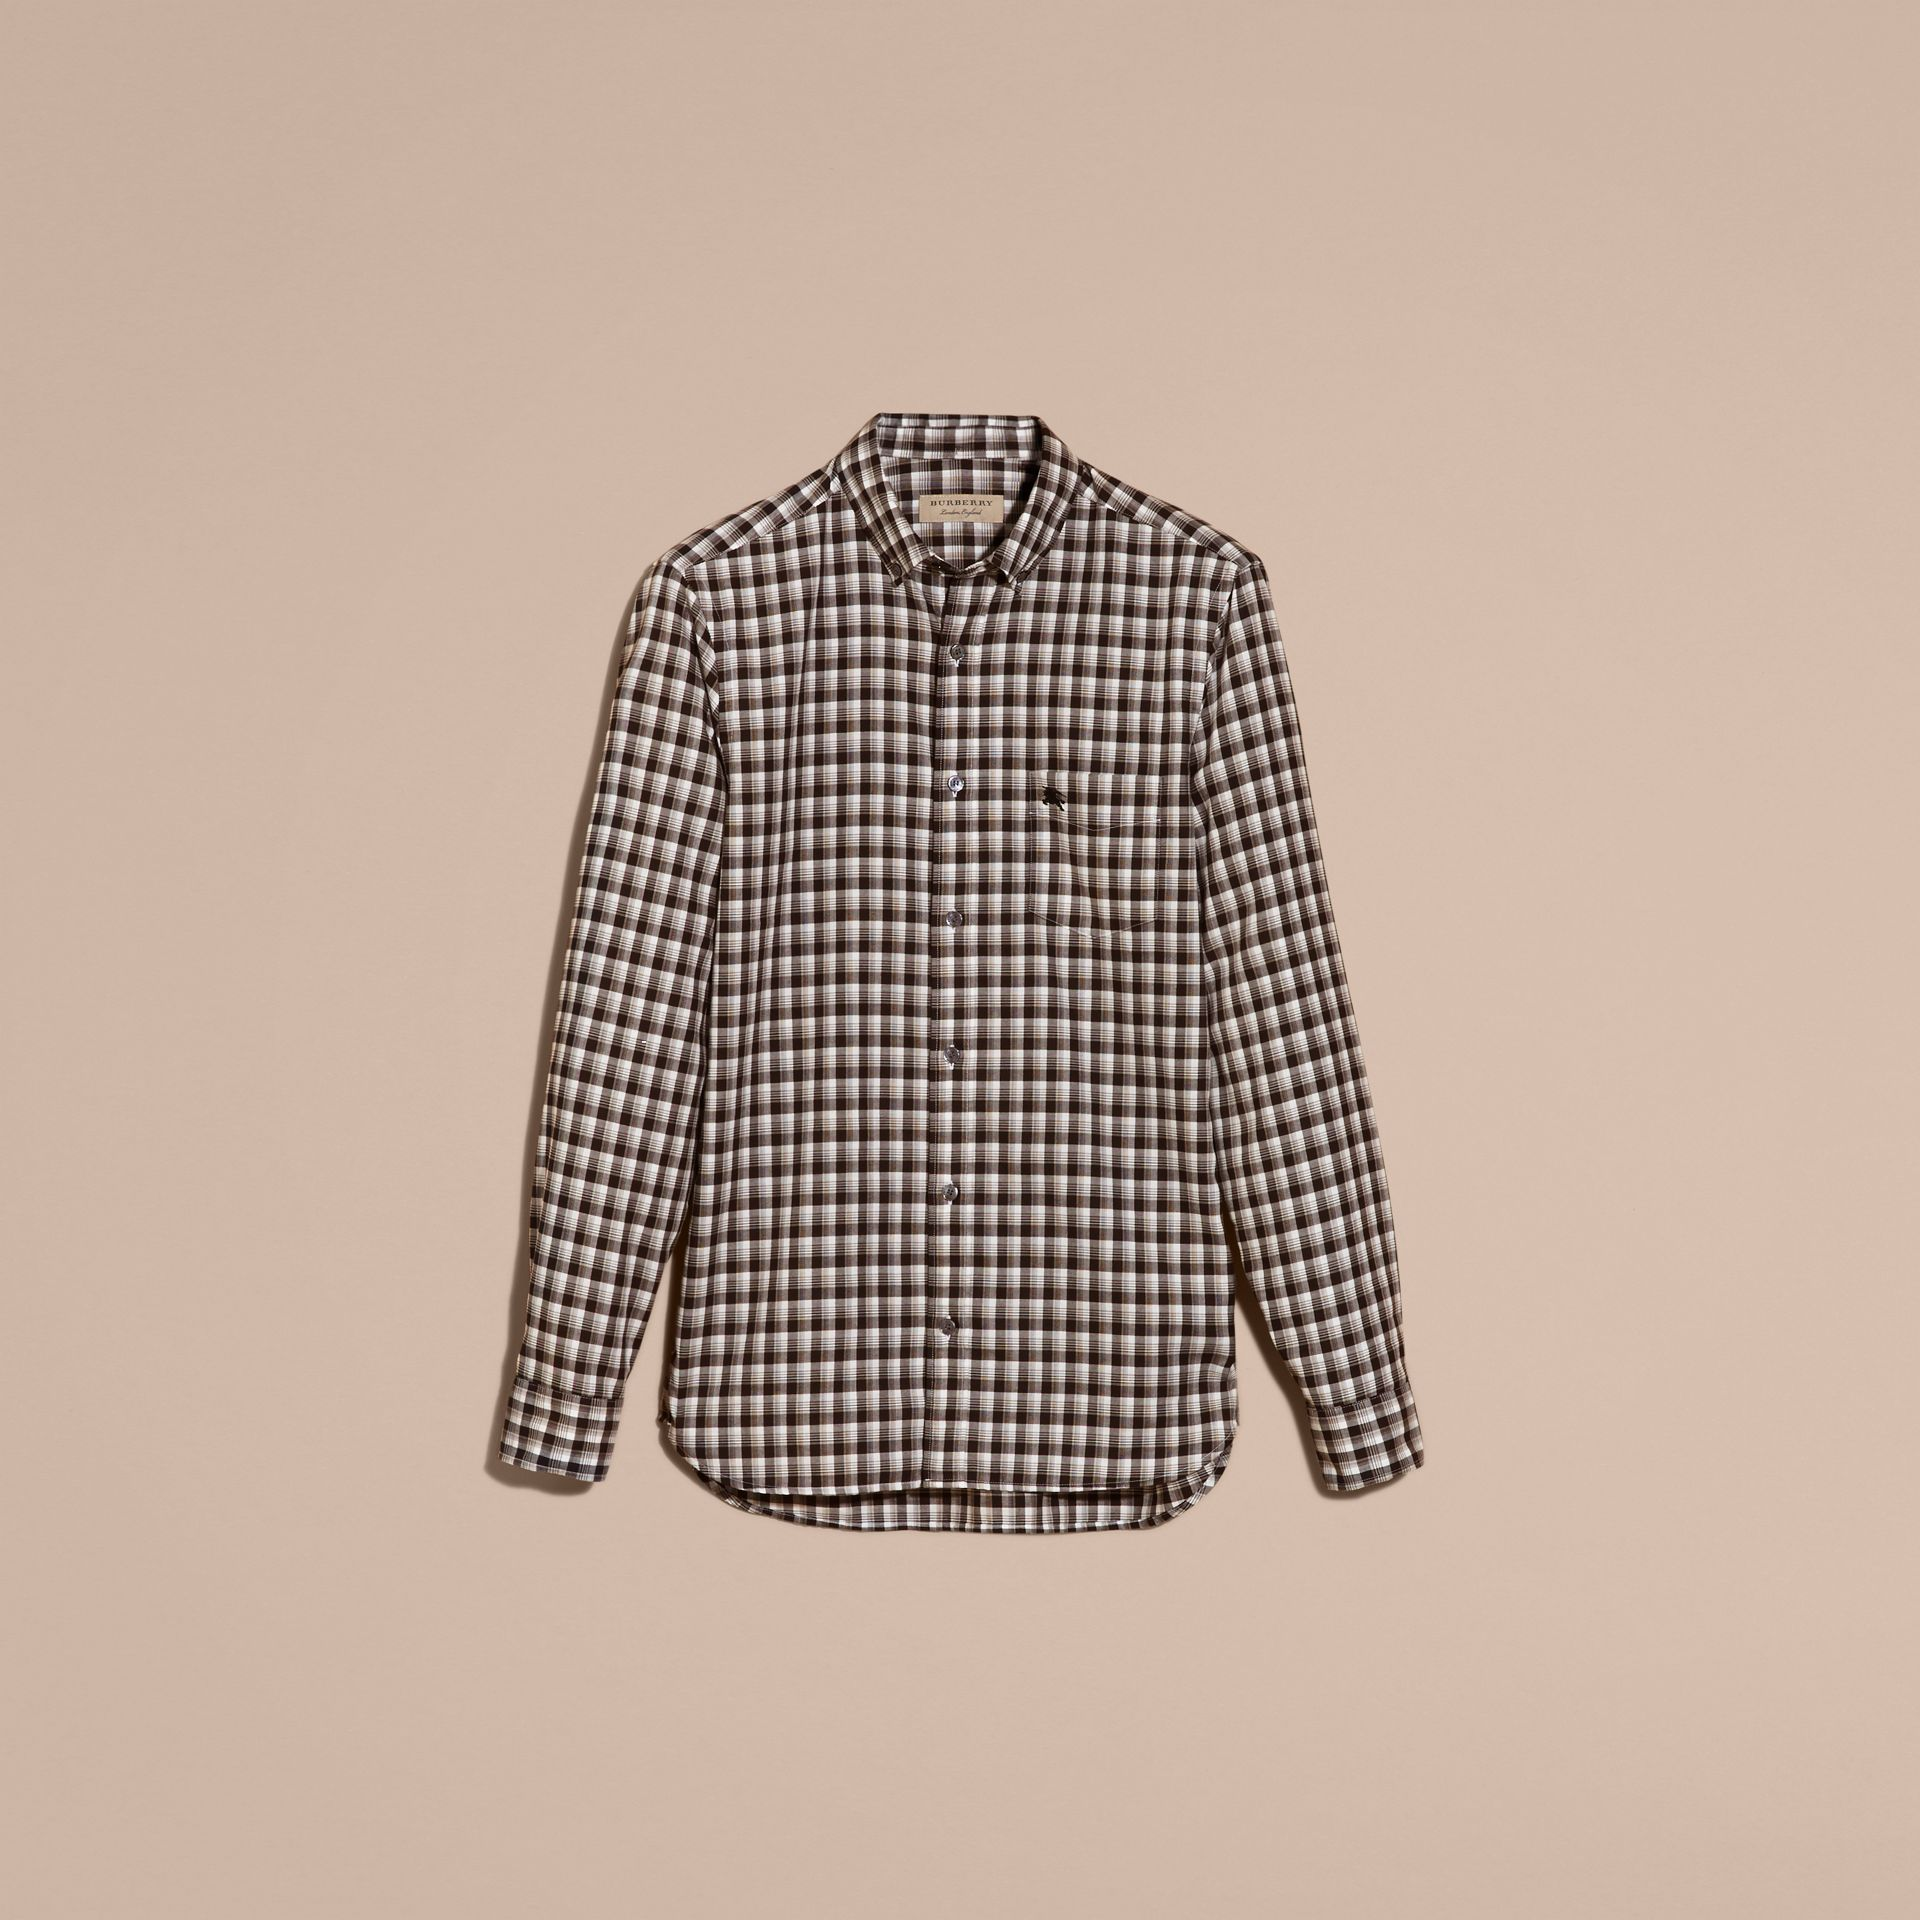 Black Gingham Check Cotton Twill Shirt Black - gallery image 4